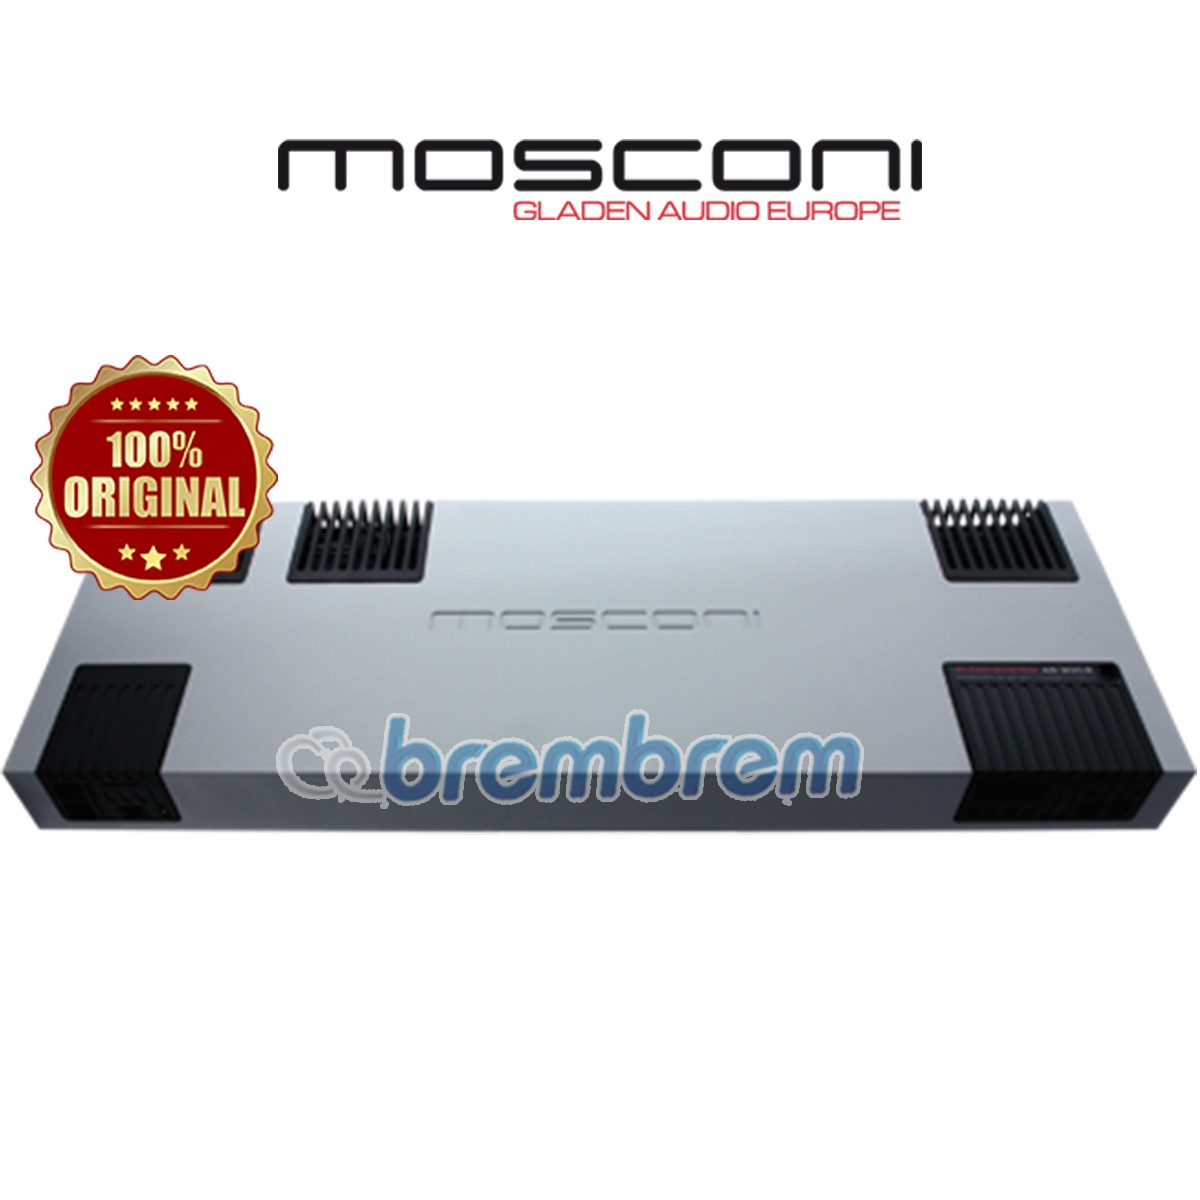 MOSCONI AS 300.2 - POWER 2 CHANNEL